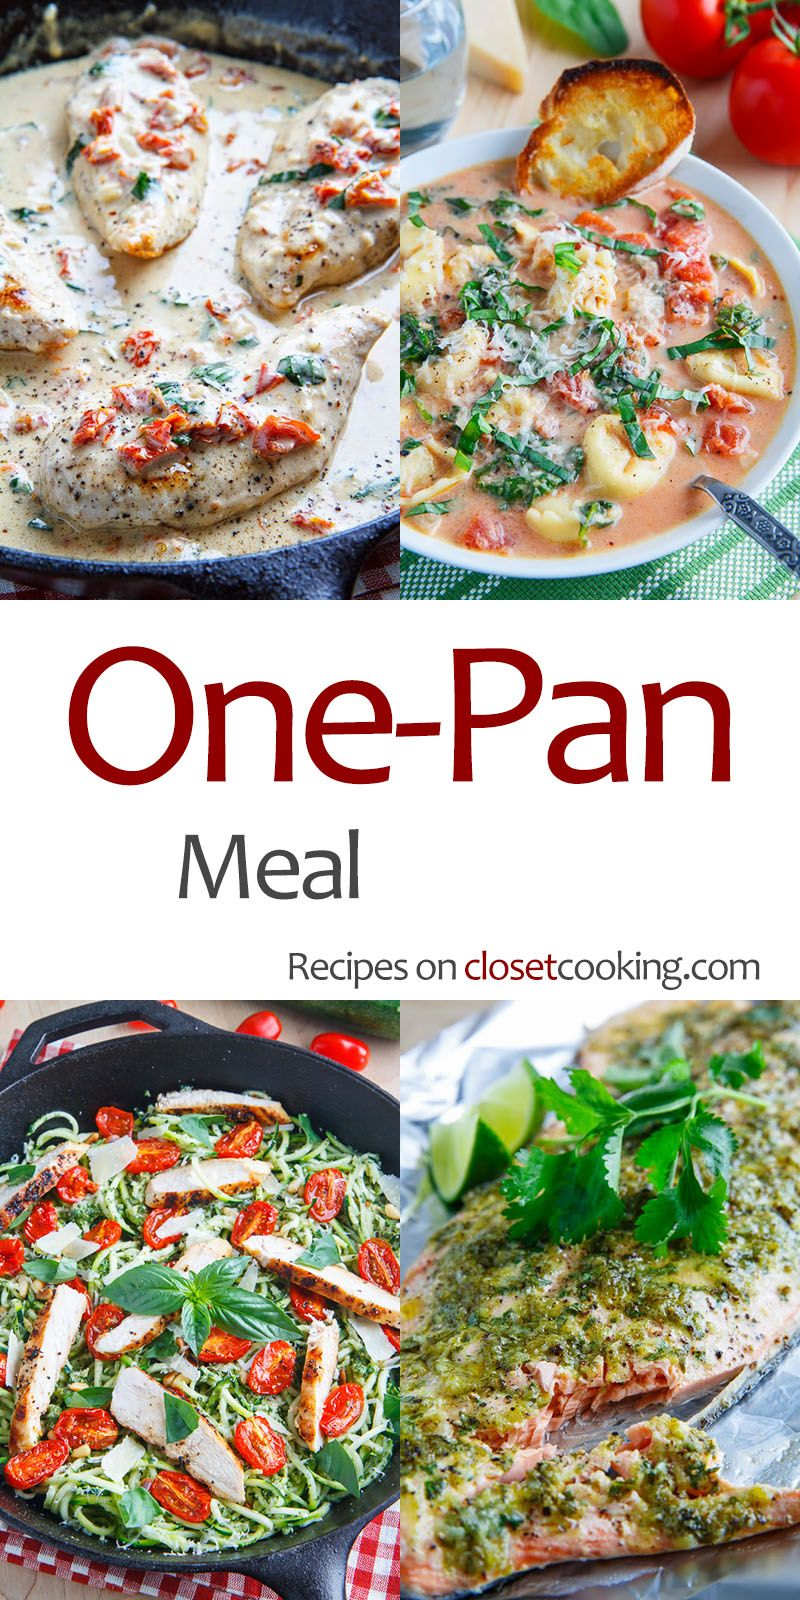 One-Pan Meals images